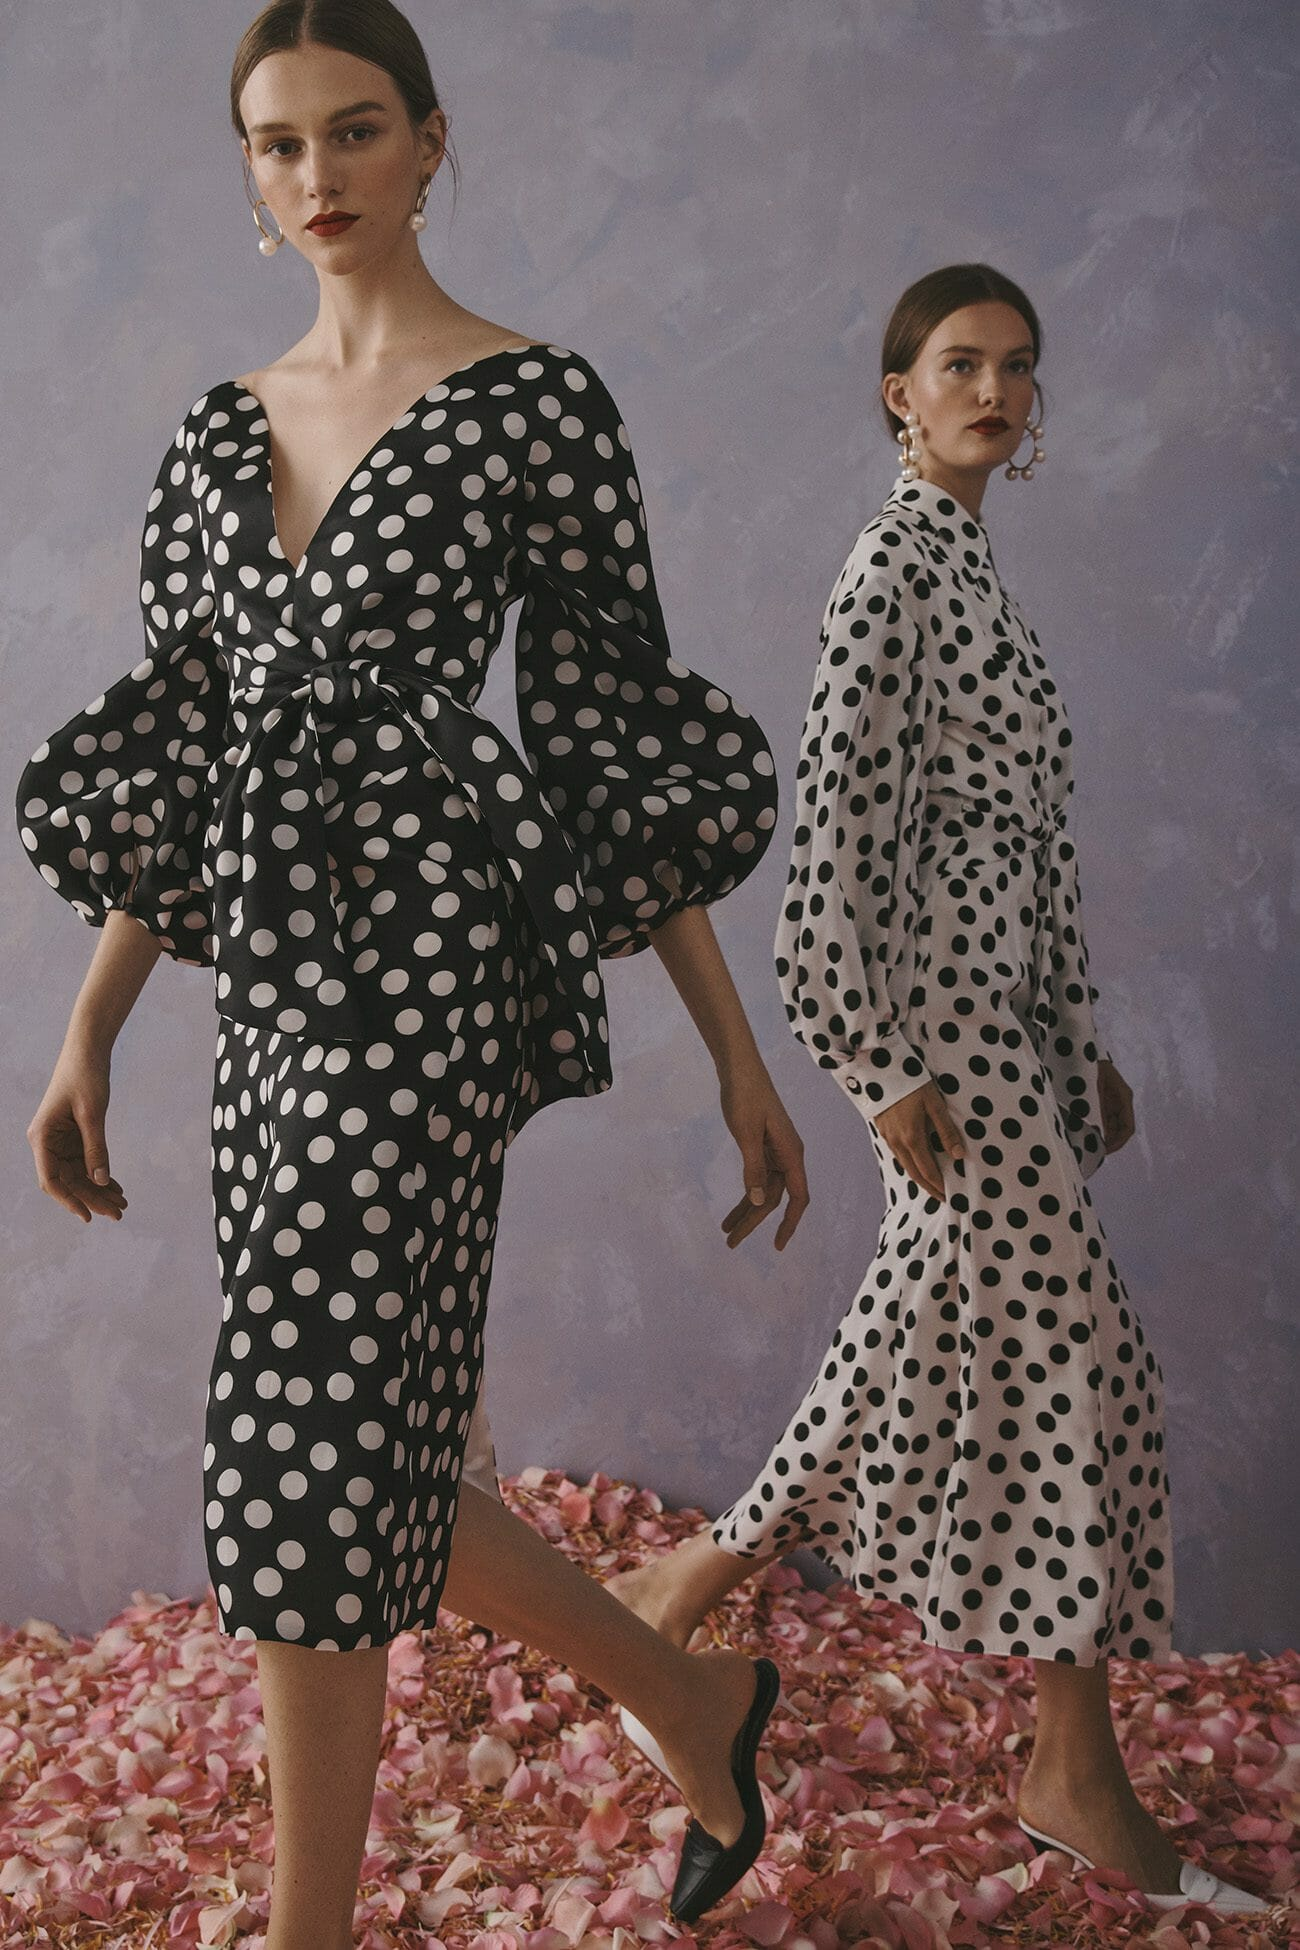 Carolina Herrera New York Resort 2020 Collection polka dot black white dress